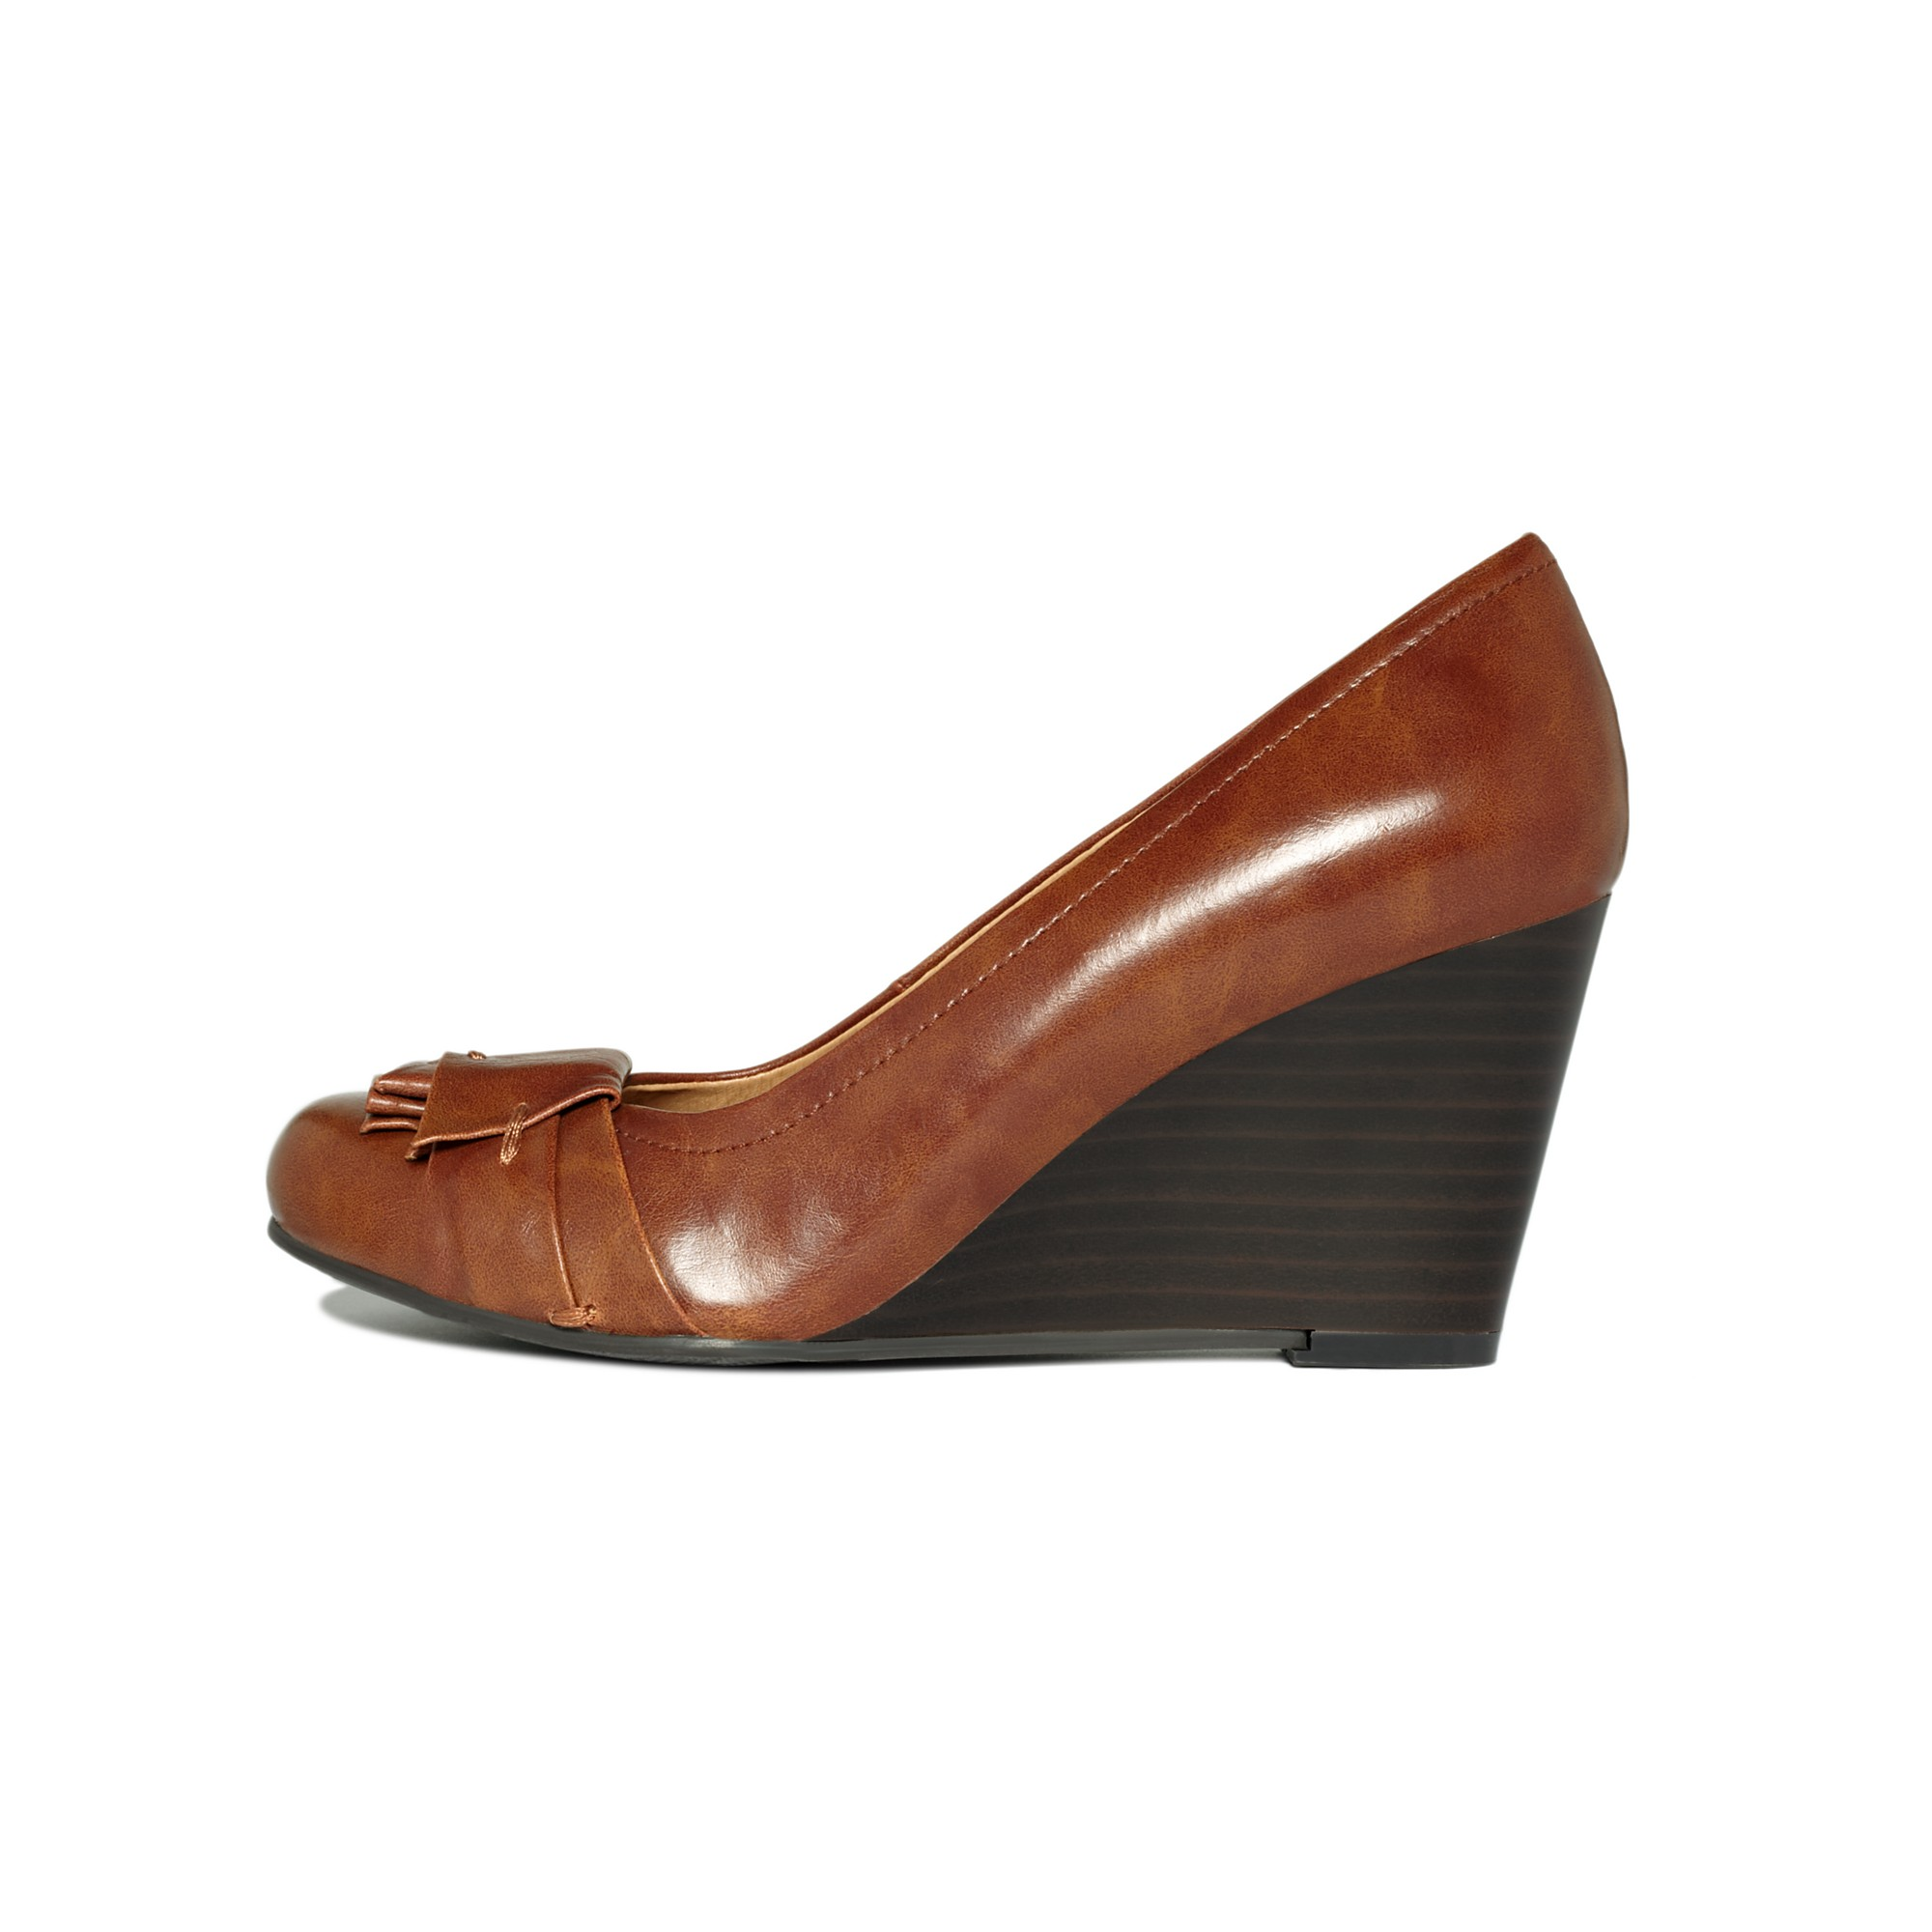 a209b51aef Lyst - Chinese Laundry Cl By Laundry Shoes Irmine Wedge Pumps in Brown